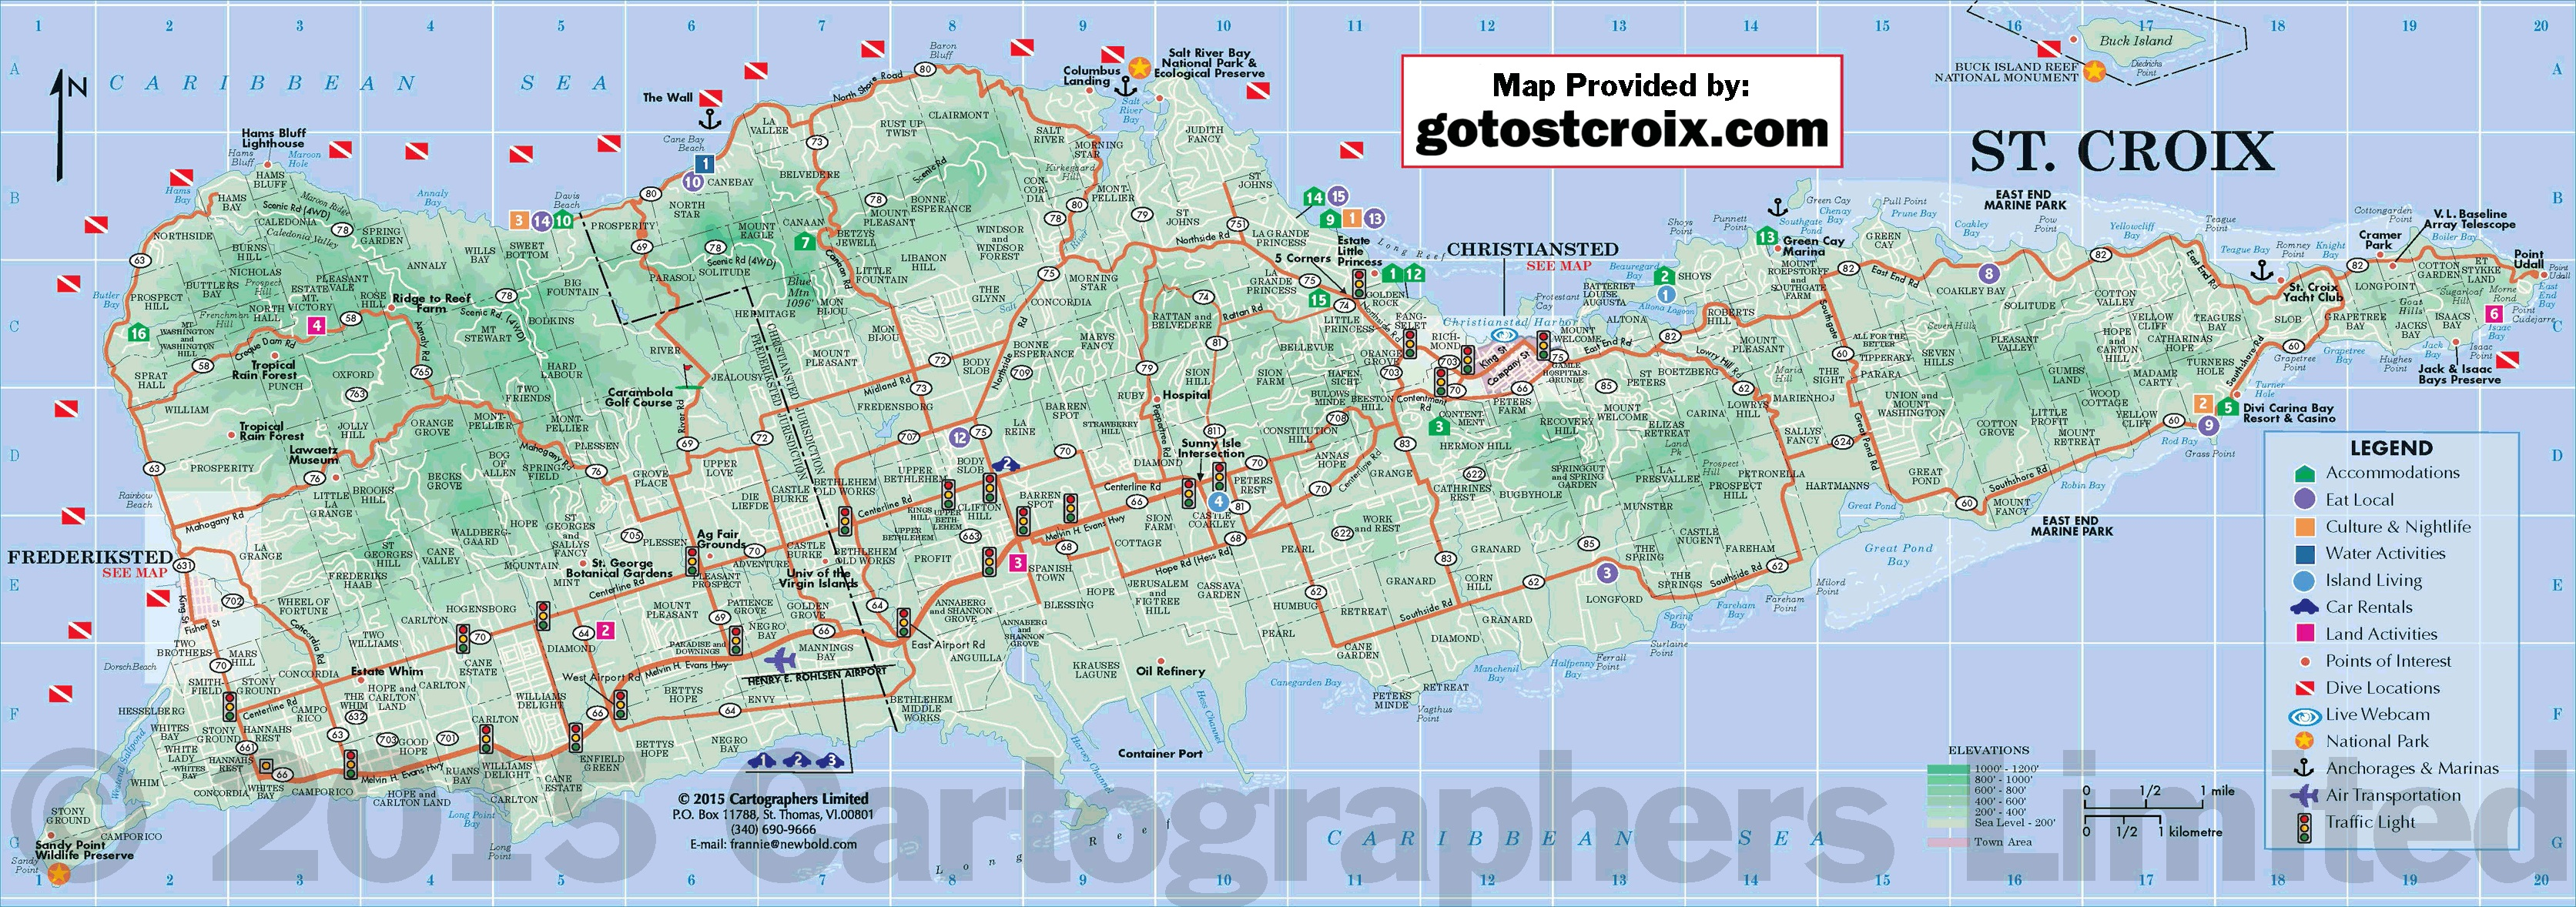 st croix island is divided in to various districts called quarters these quarters are used in particular when dealing in st croix real estate